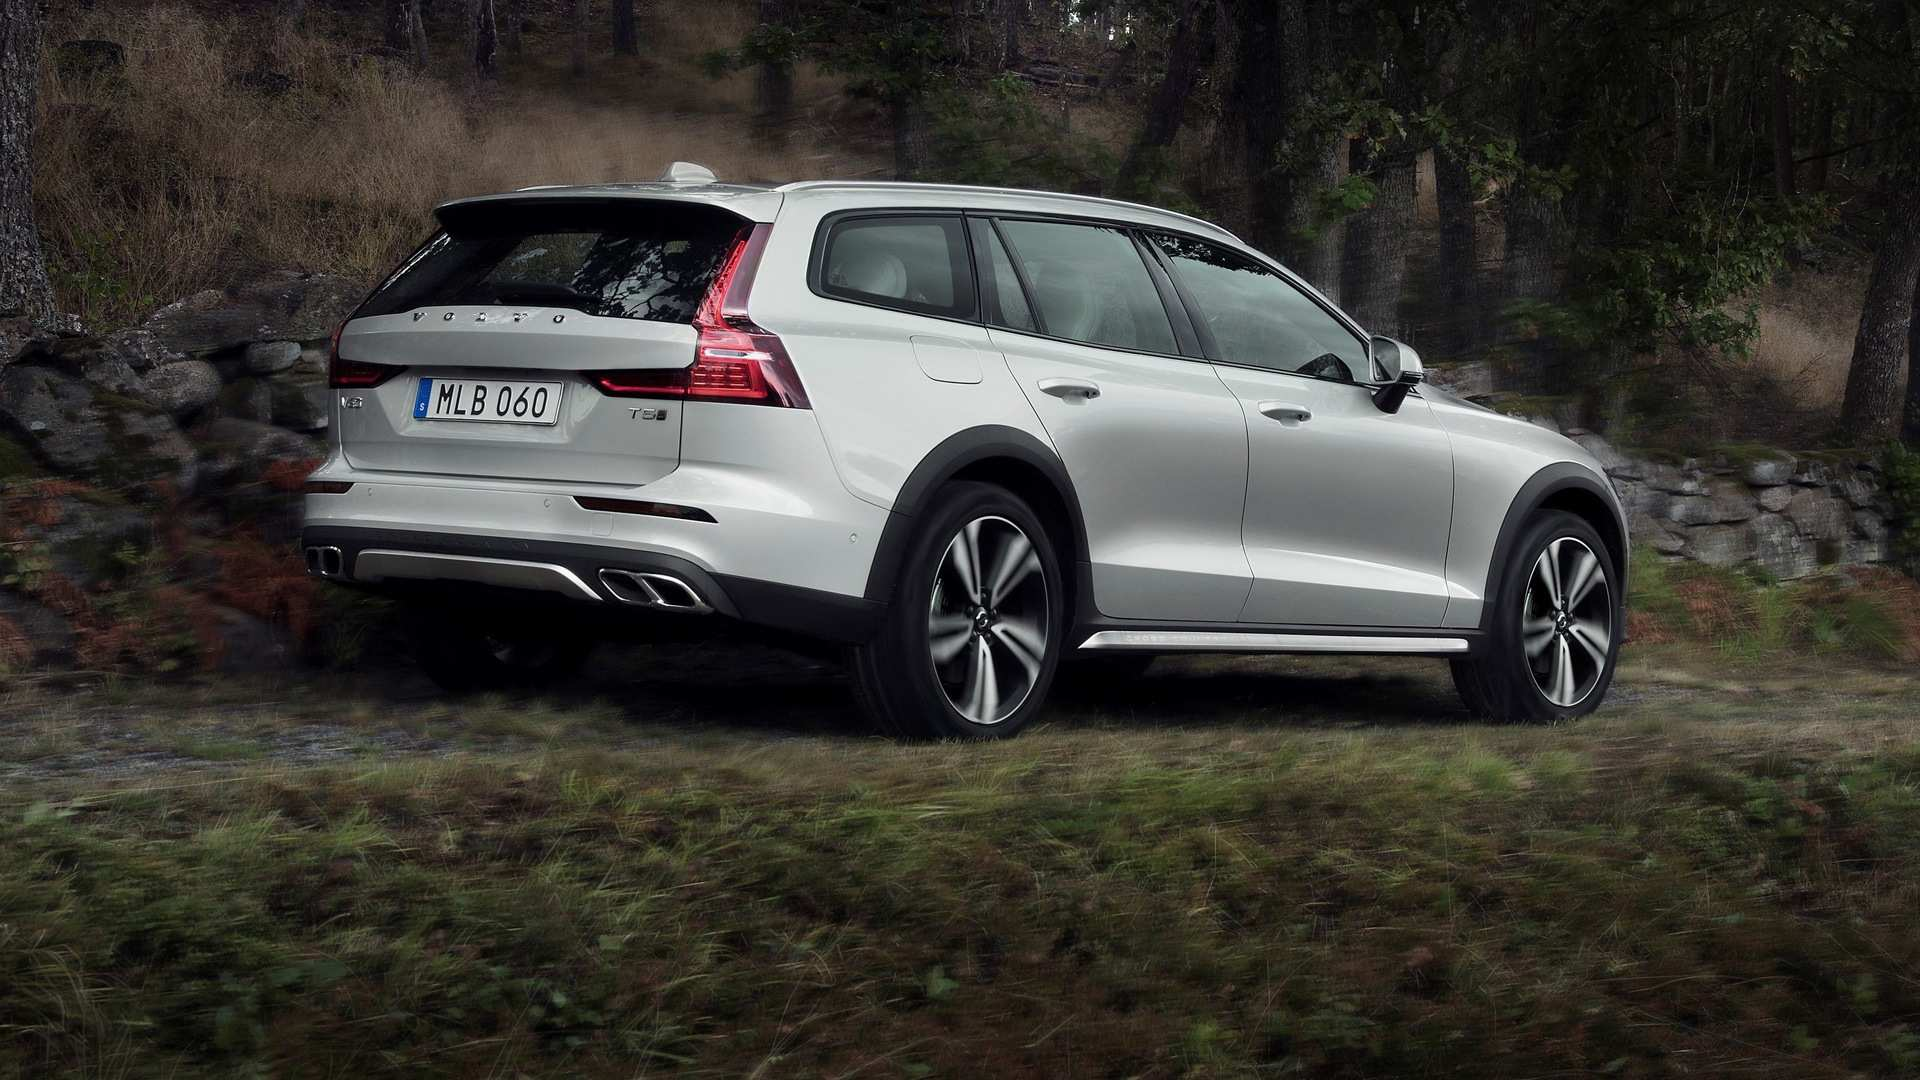 72 All New 2020 Volvo V60 Cross Country Release Date for 2020 Volvo V60 Cross Country